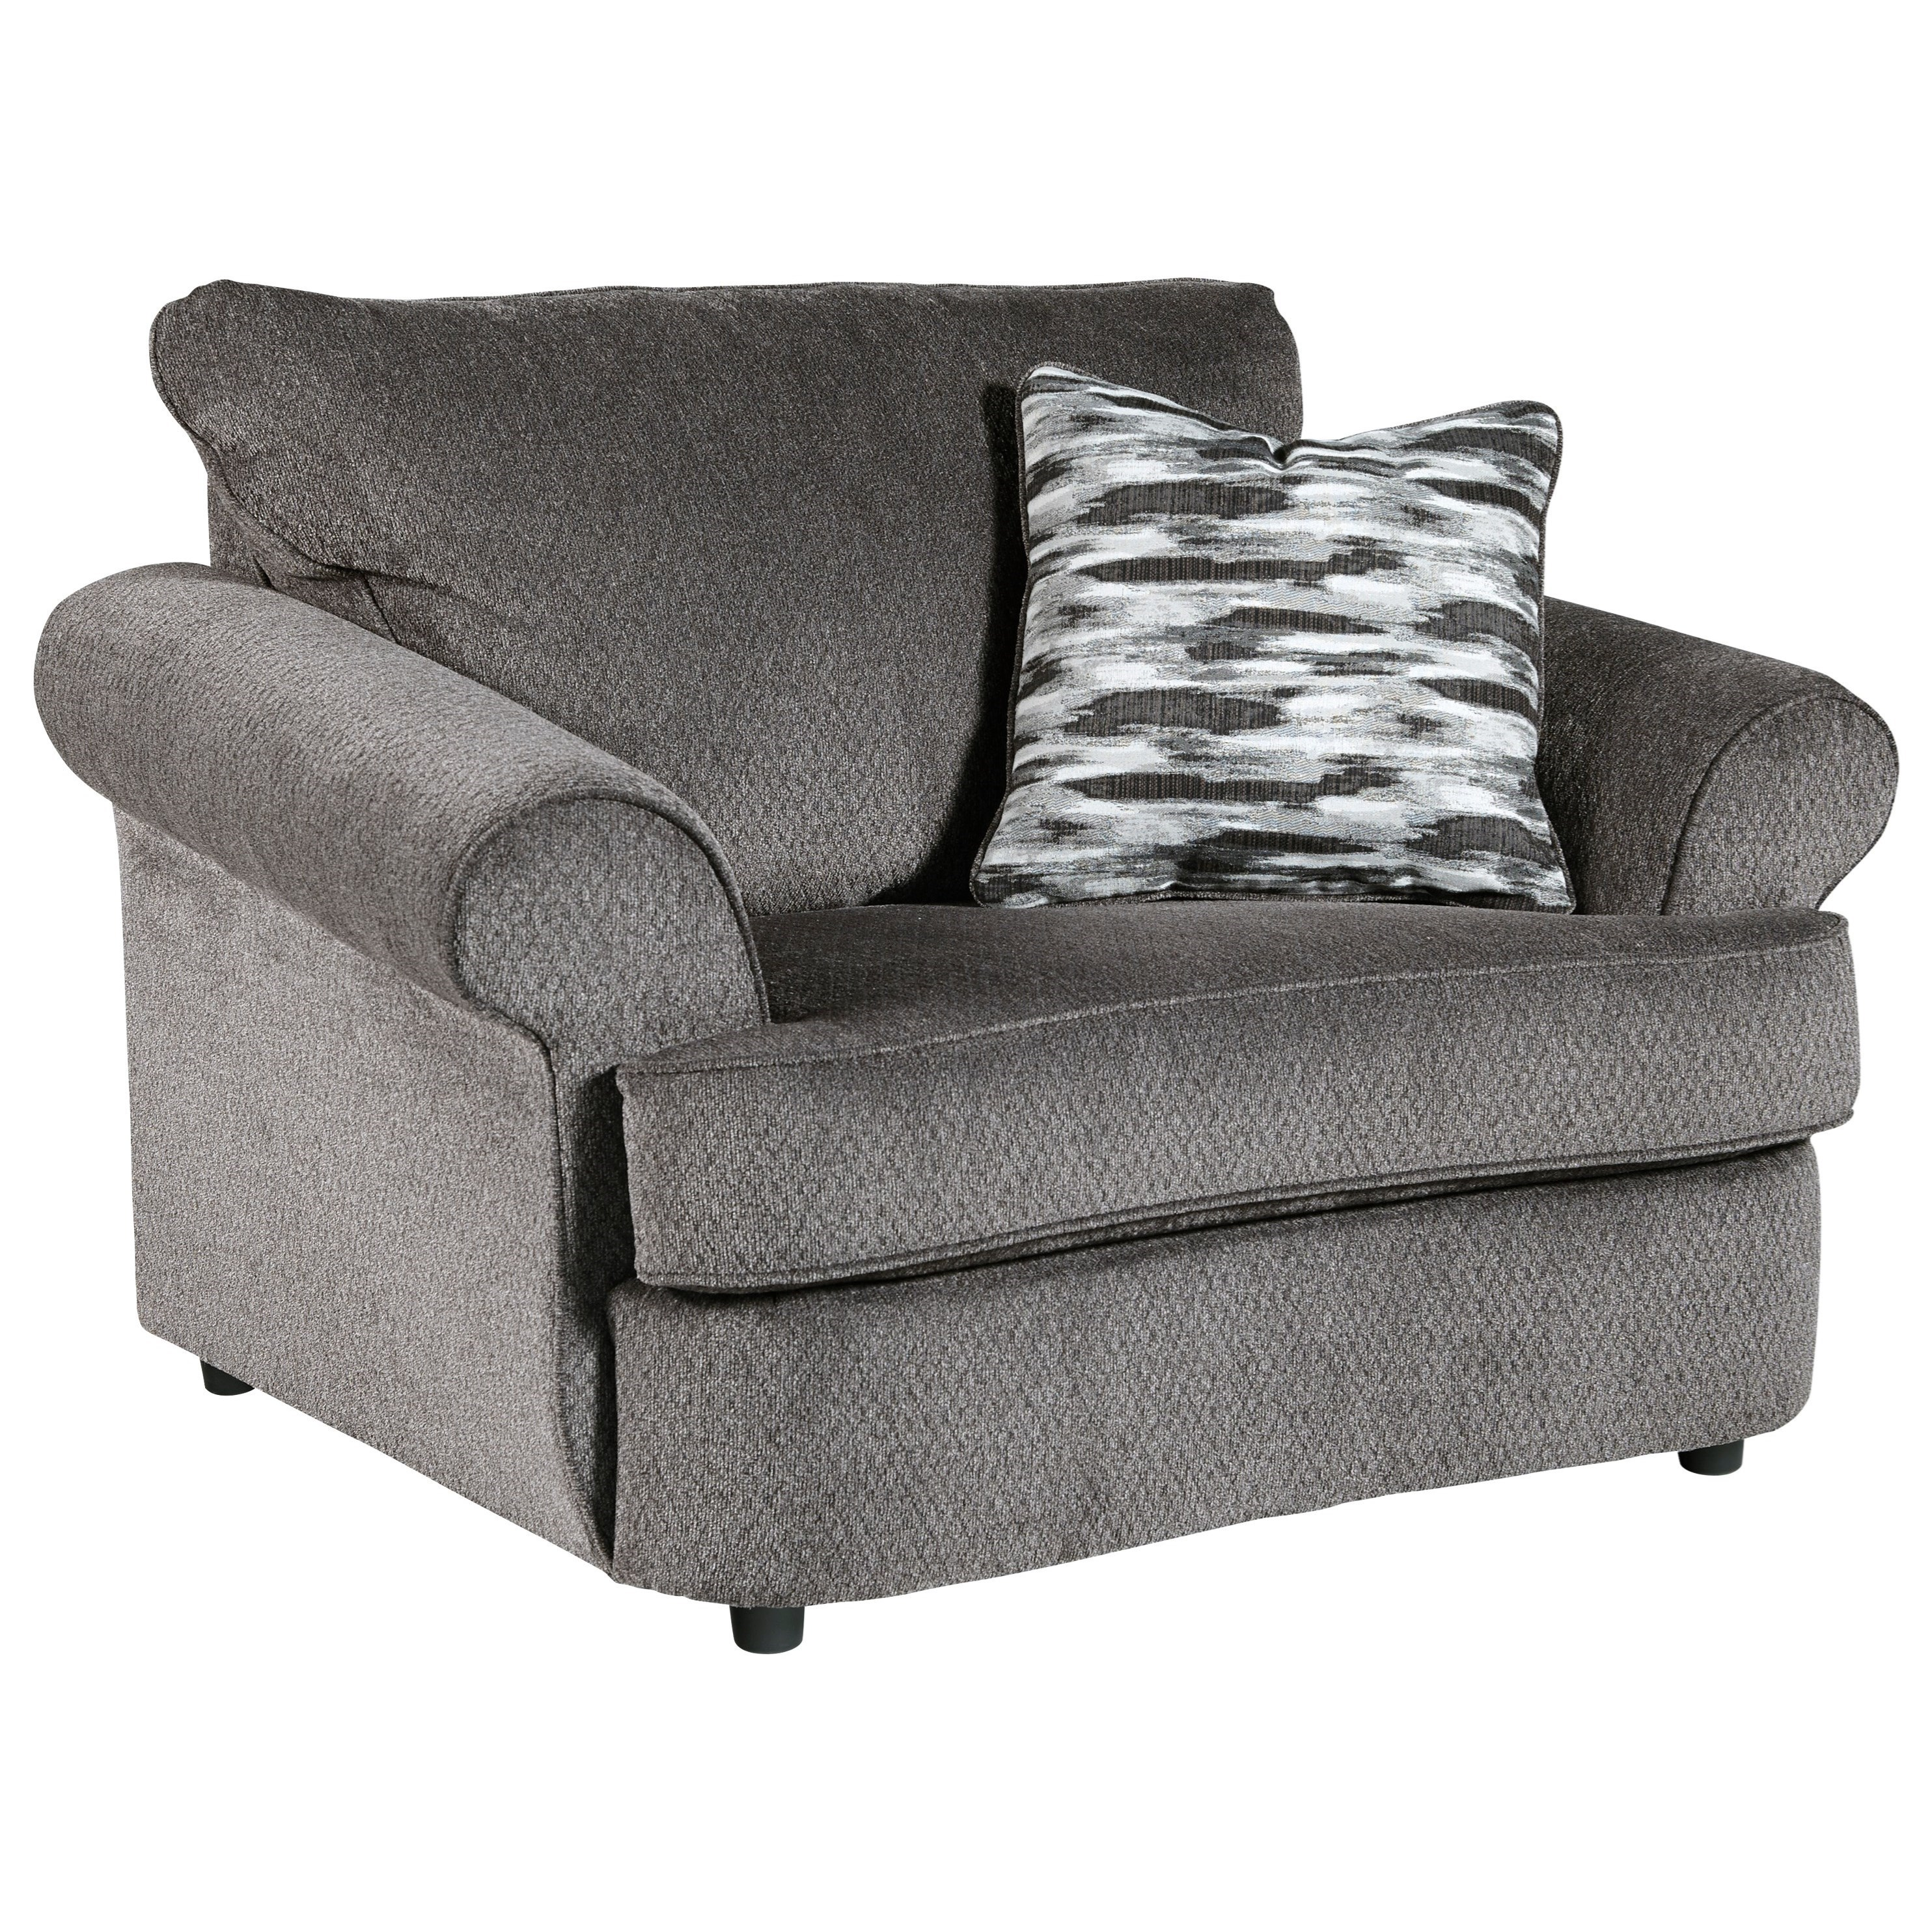 Gray Oversized Chair Benchcraft By Ashley Allouette Chair And A Half In Gray